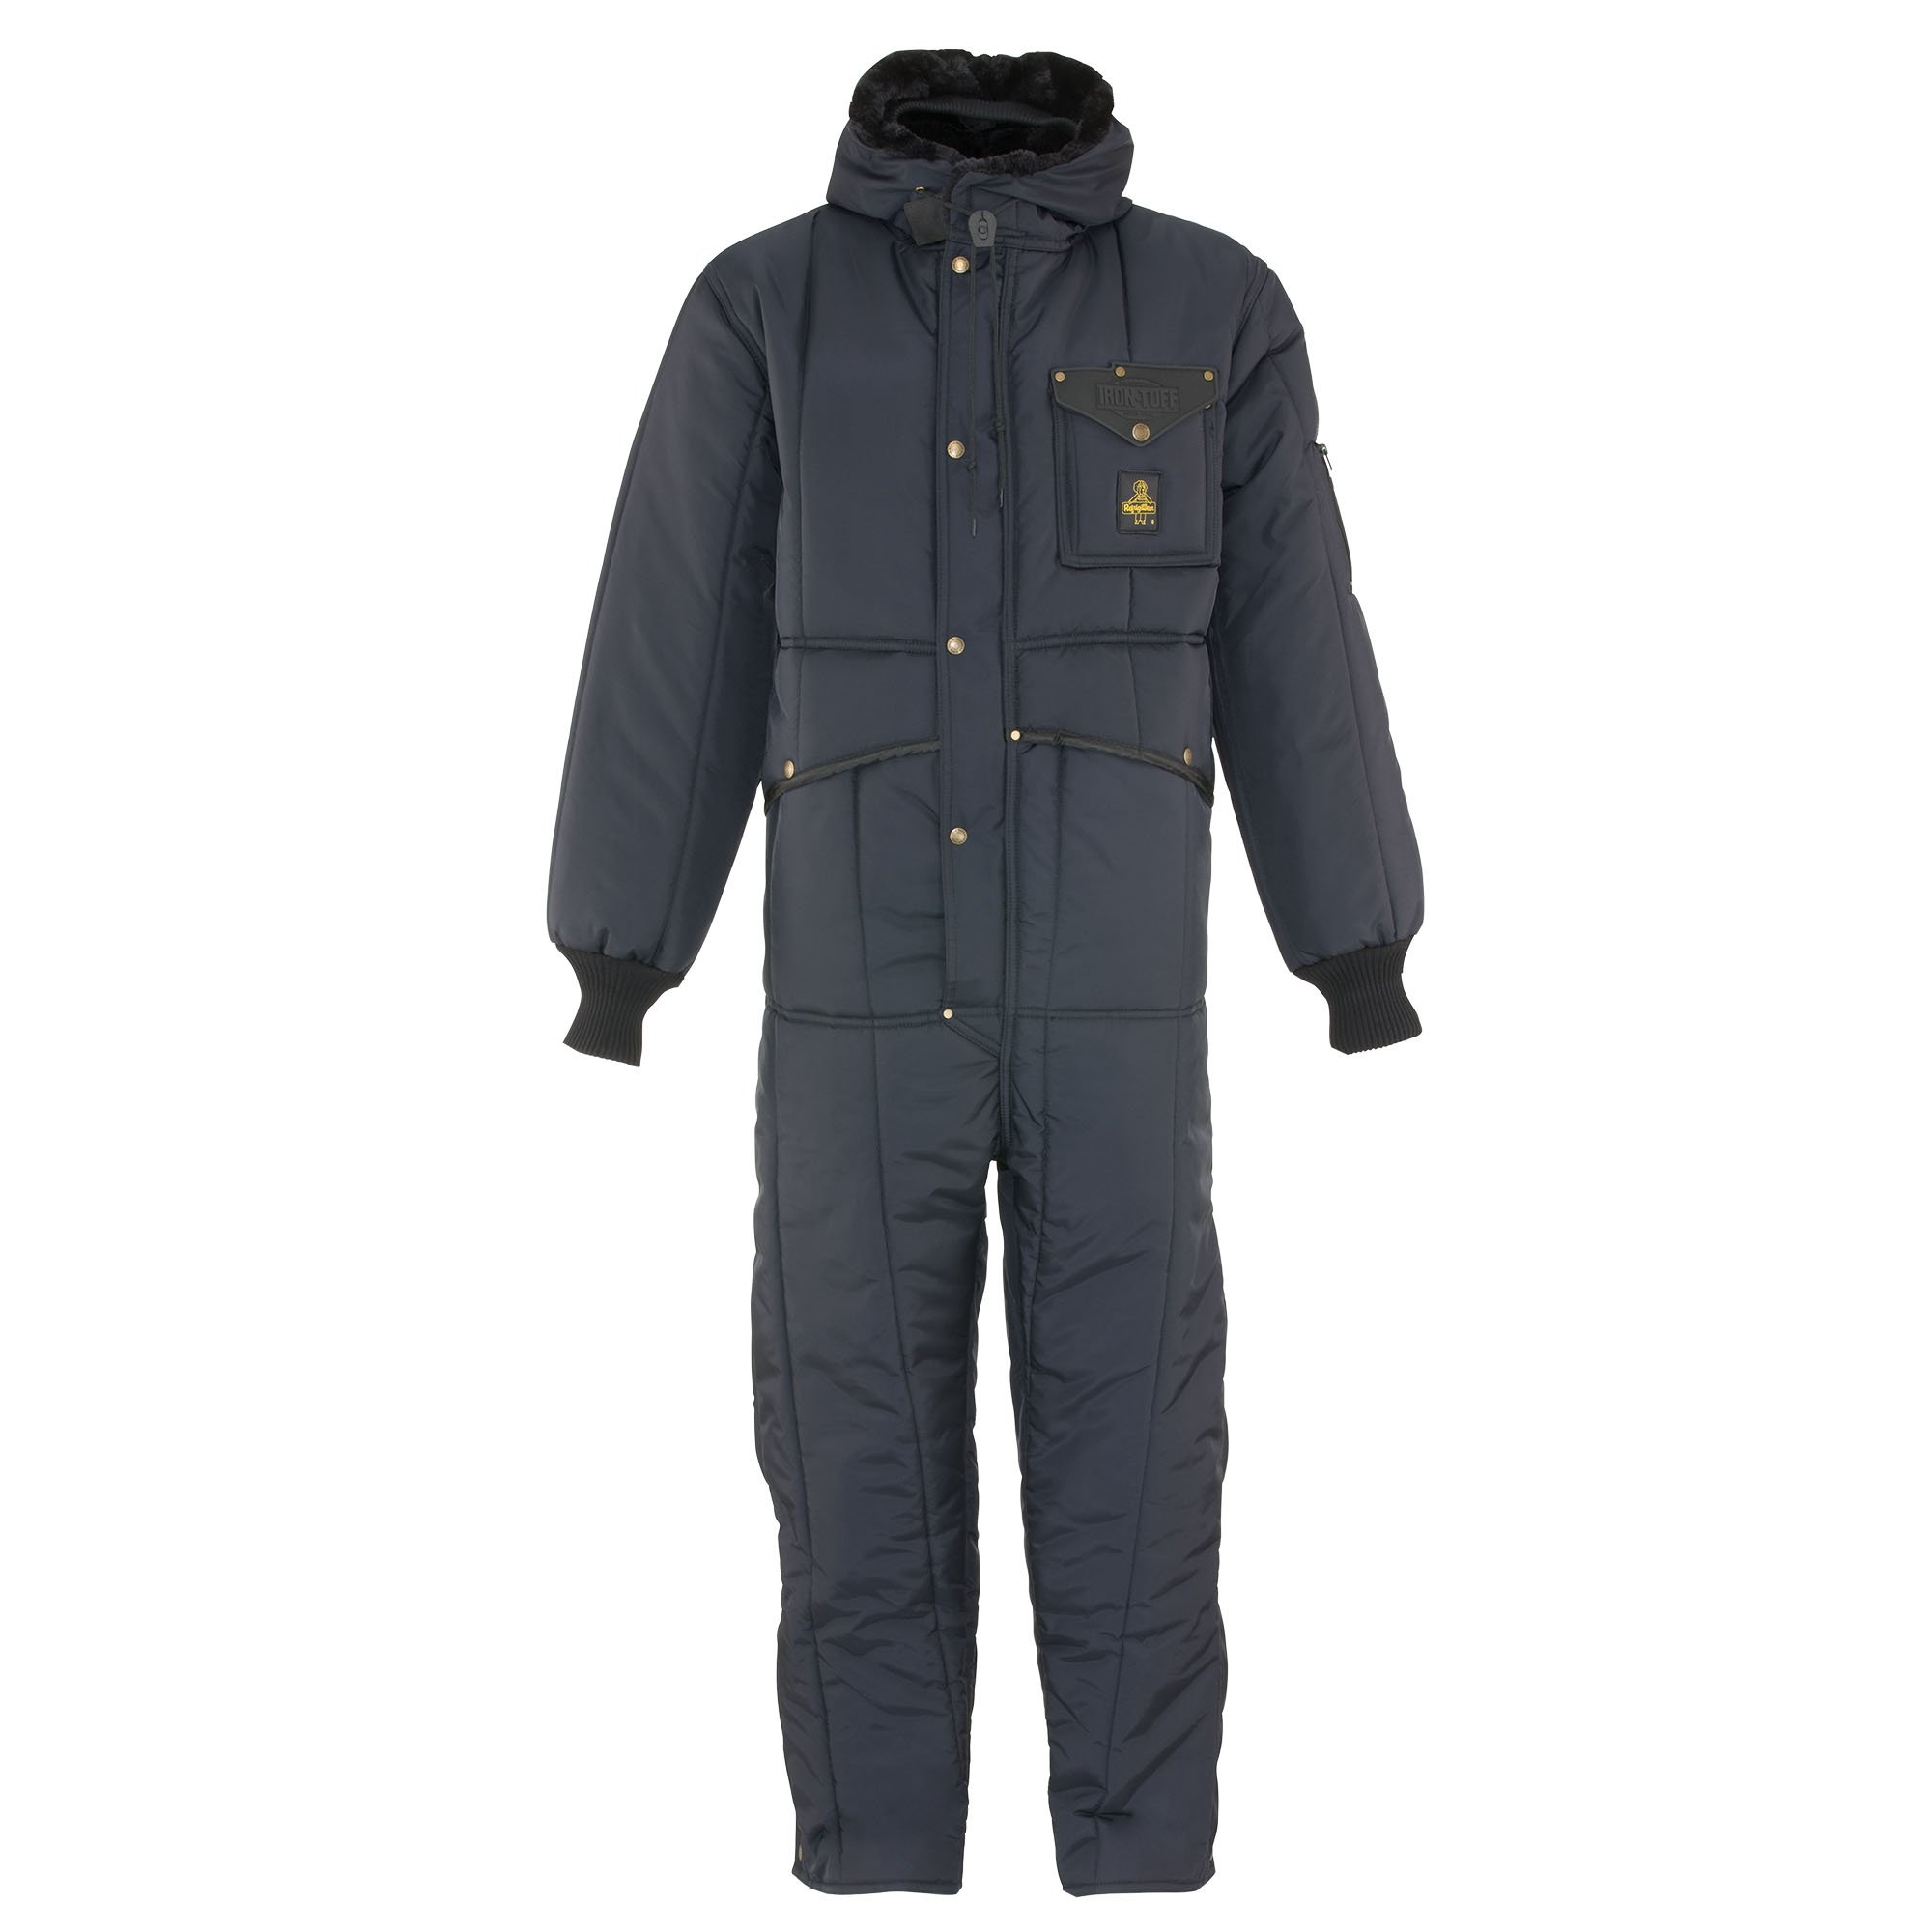 RefrigiWear Men's Iron-Tuff Insulated Coveralls with Hood -50 Extreme Cold Suit (Navy Blue, XL Short)